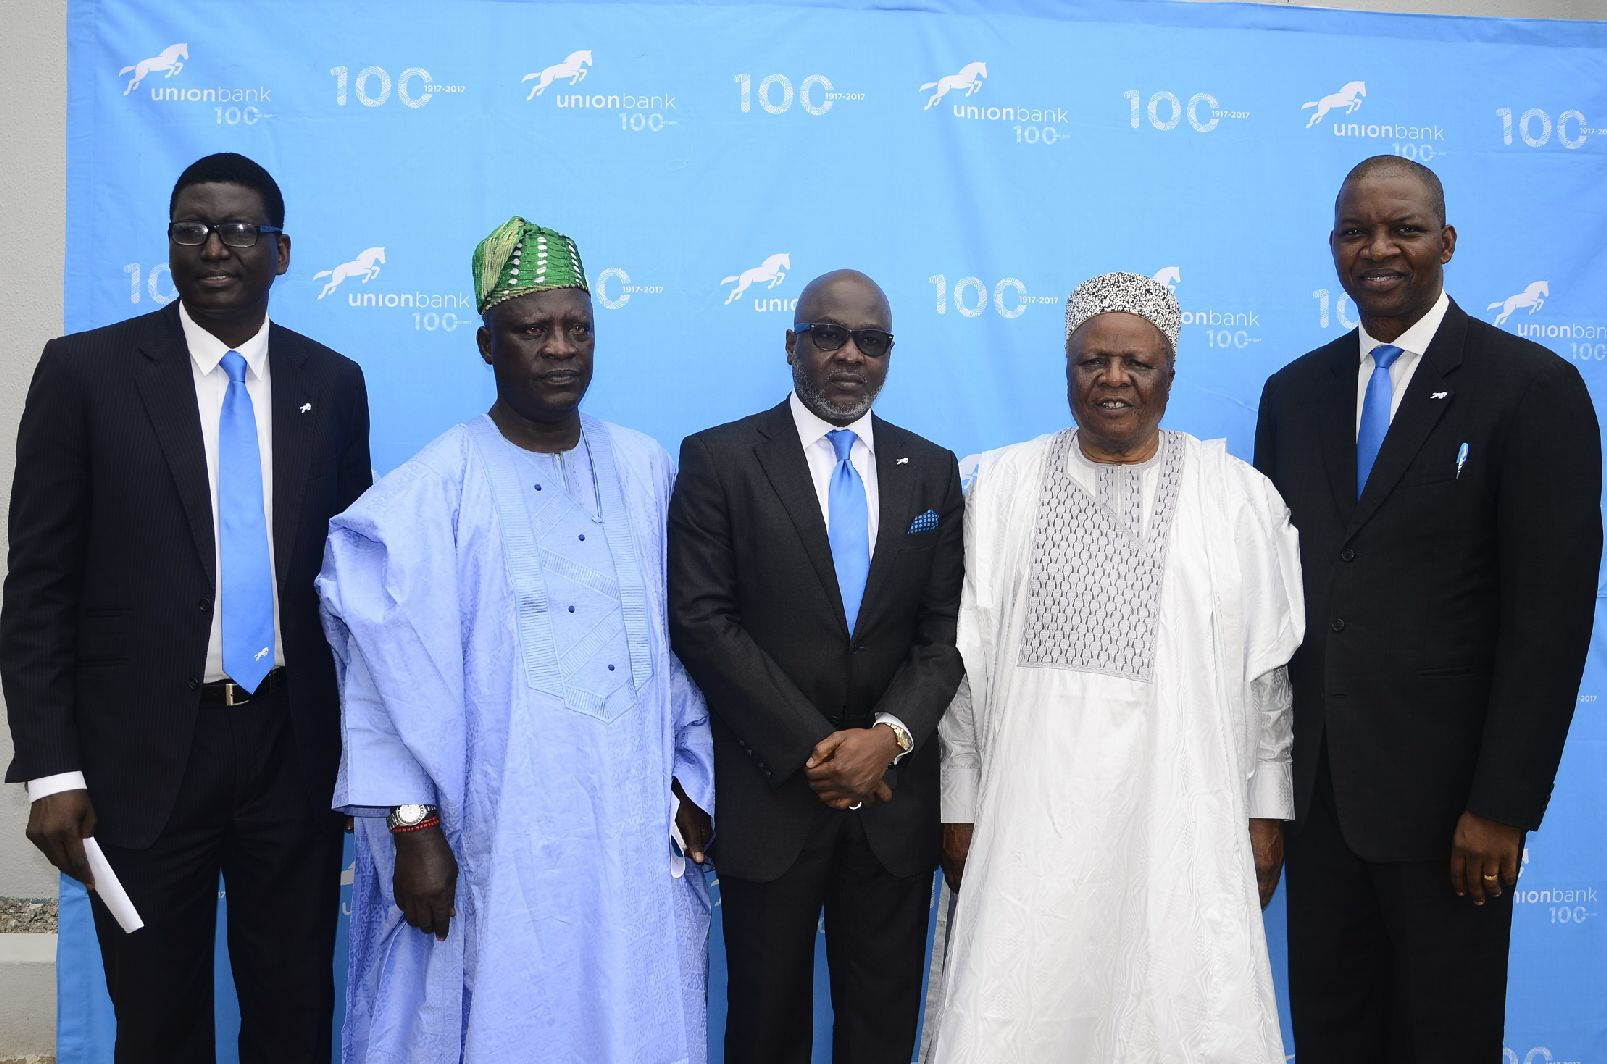 Union Bank unveils over 100 state-of-the-art branches